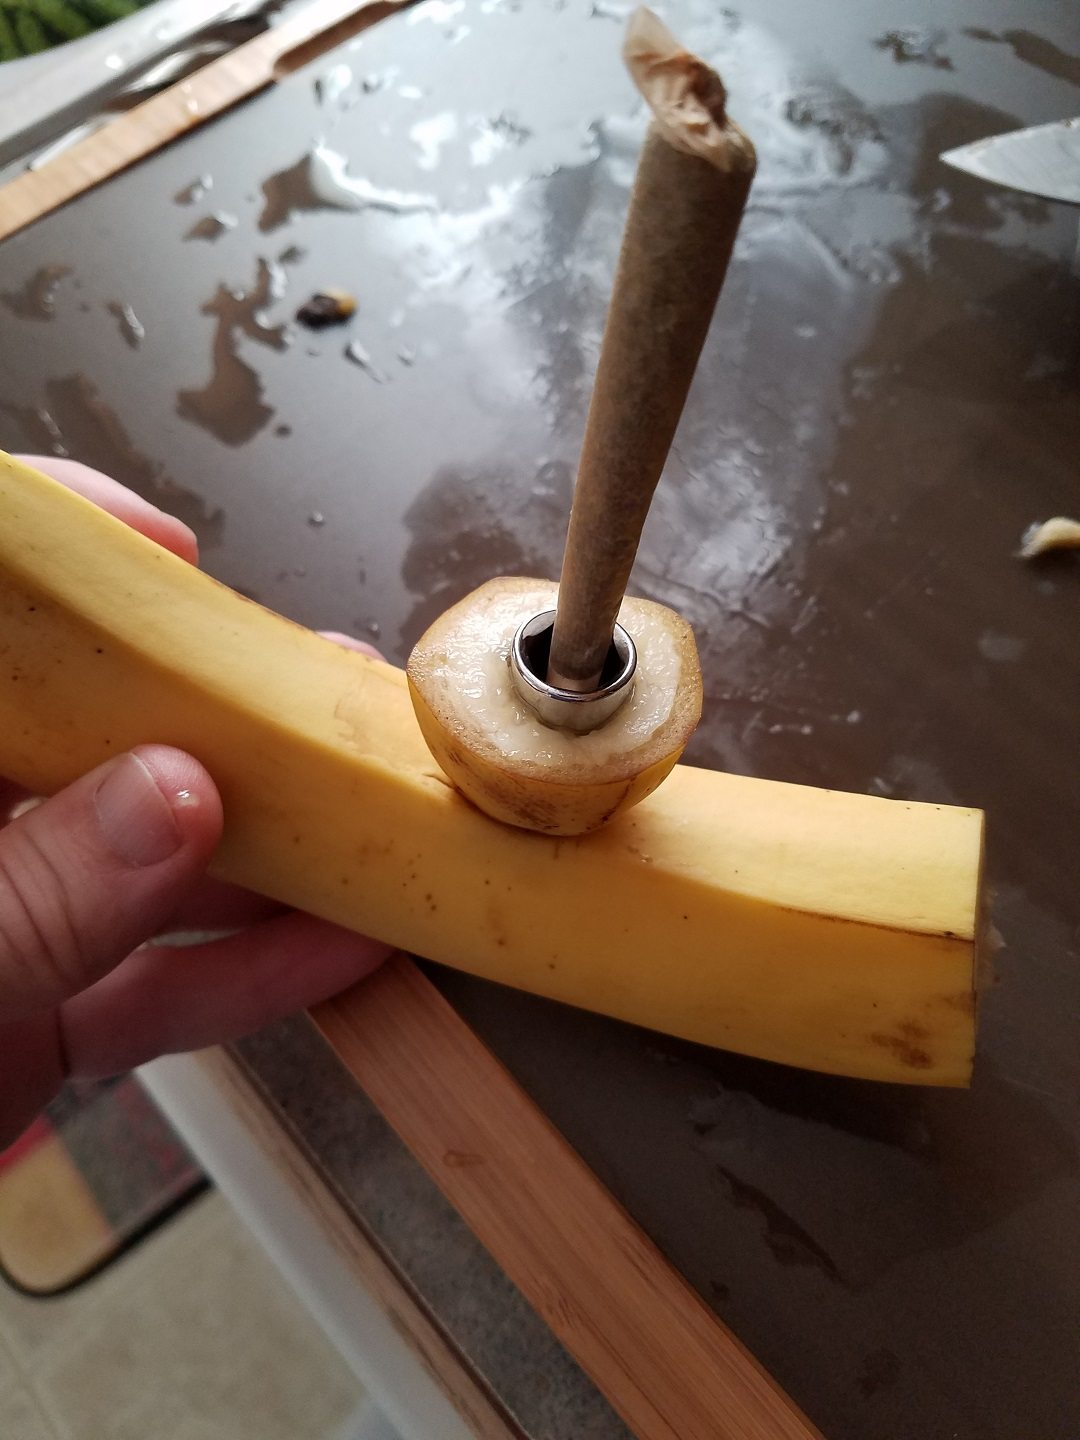 Homemade smoking tools